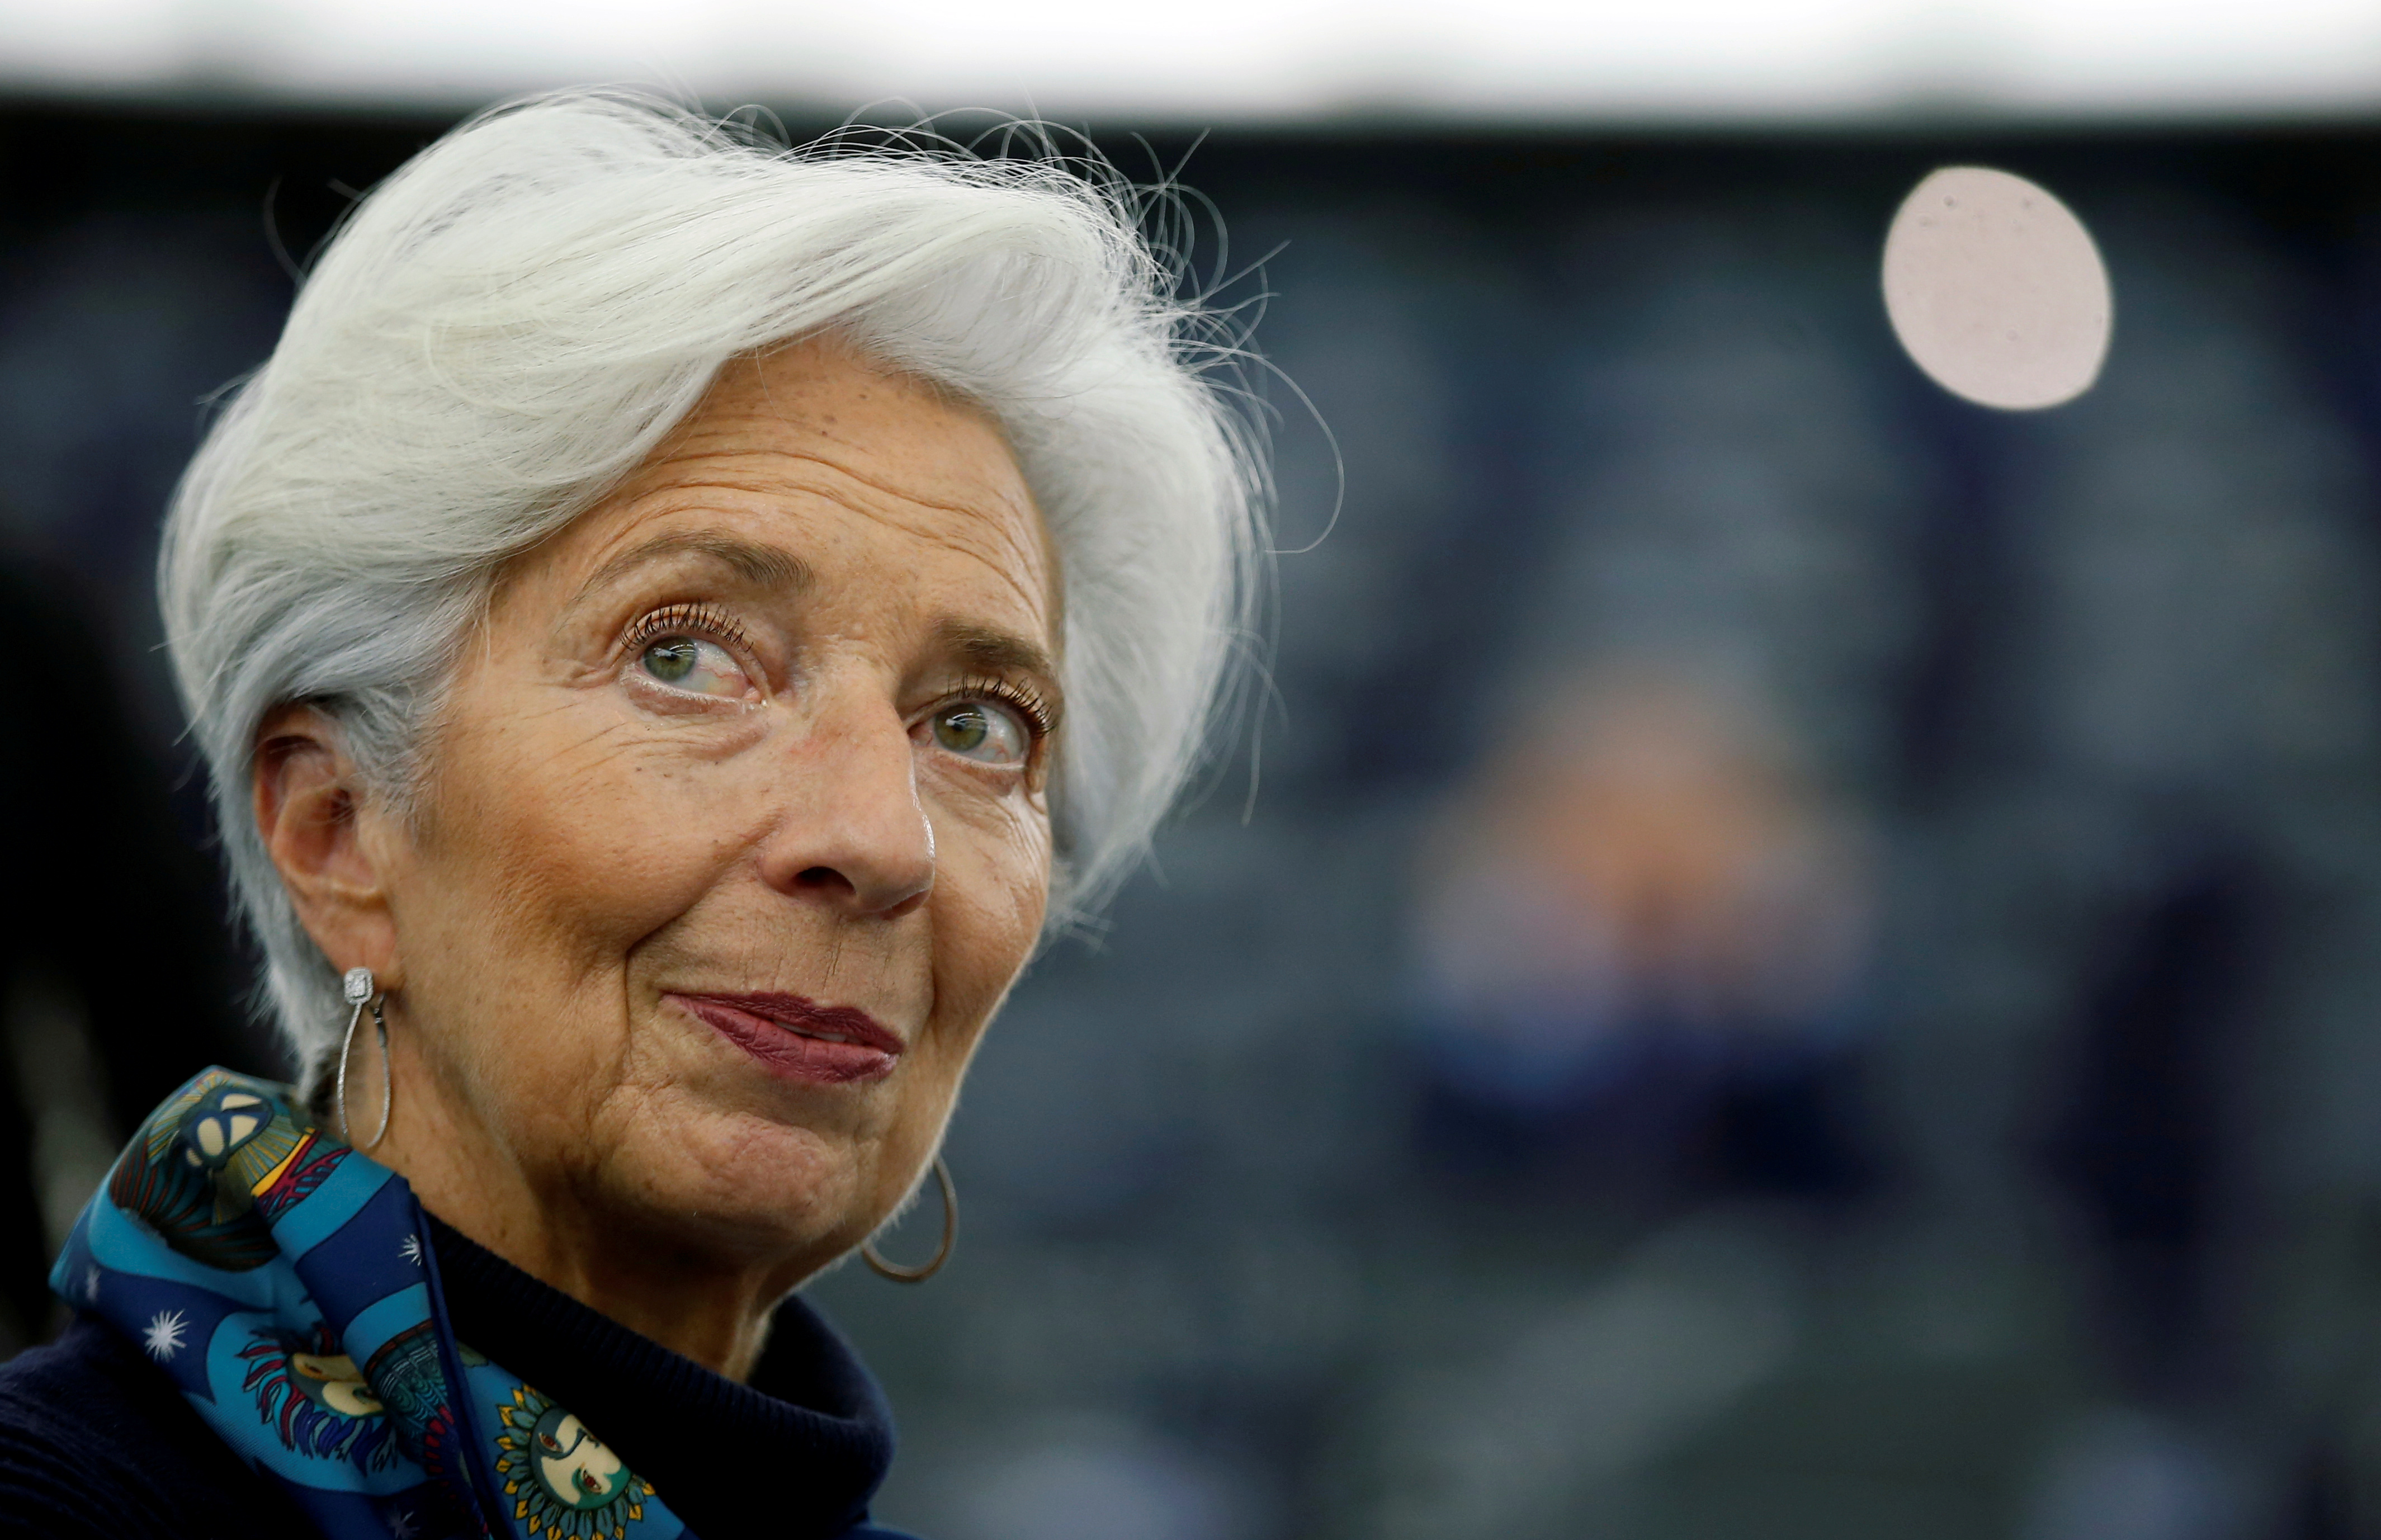 European Central Bank President Christine Lagarde looks on during a debate on the 2018 annual report of the ECB, at the European Parliament in Strasbourg, France, February 11, 2020. REUTERS/Vincent Kessler/File Photo